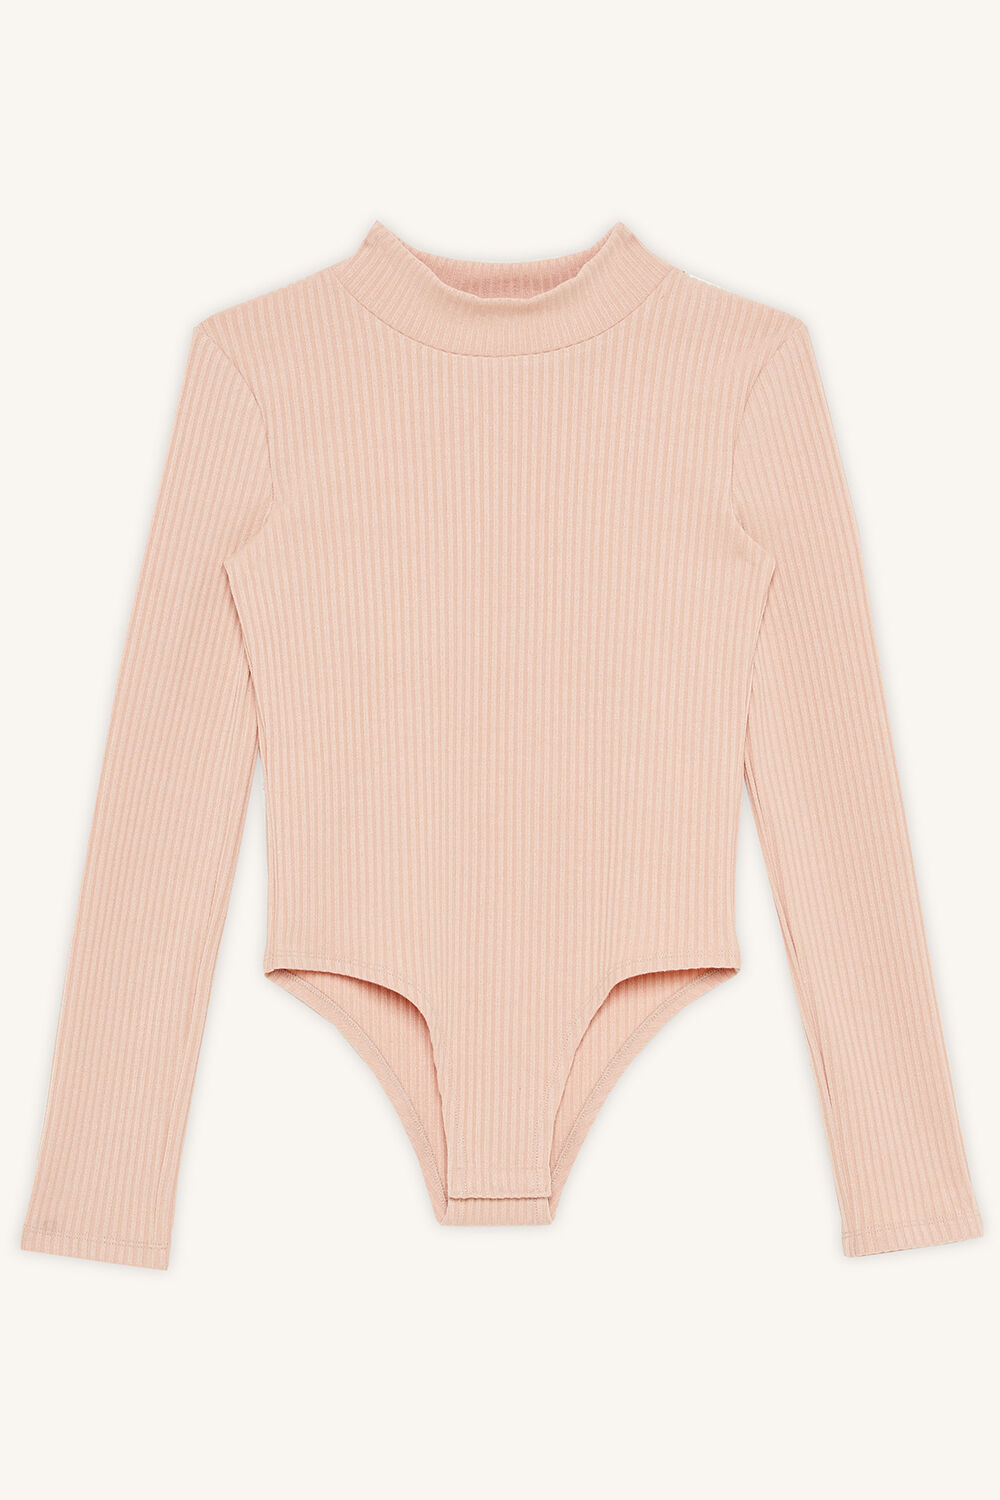 MELEODY BODYSUIT in colour PEACH BLUSH